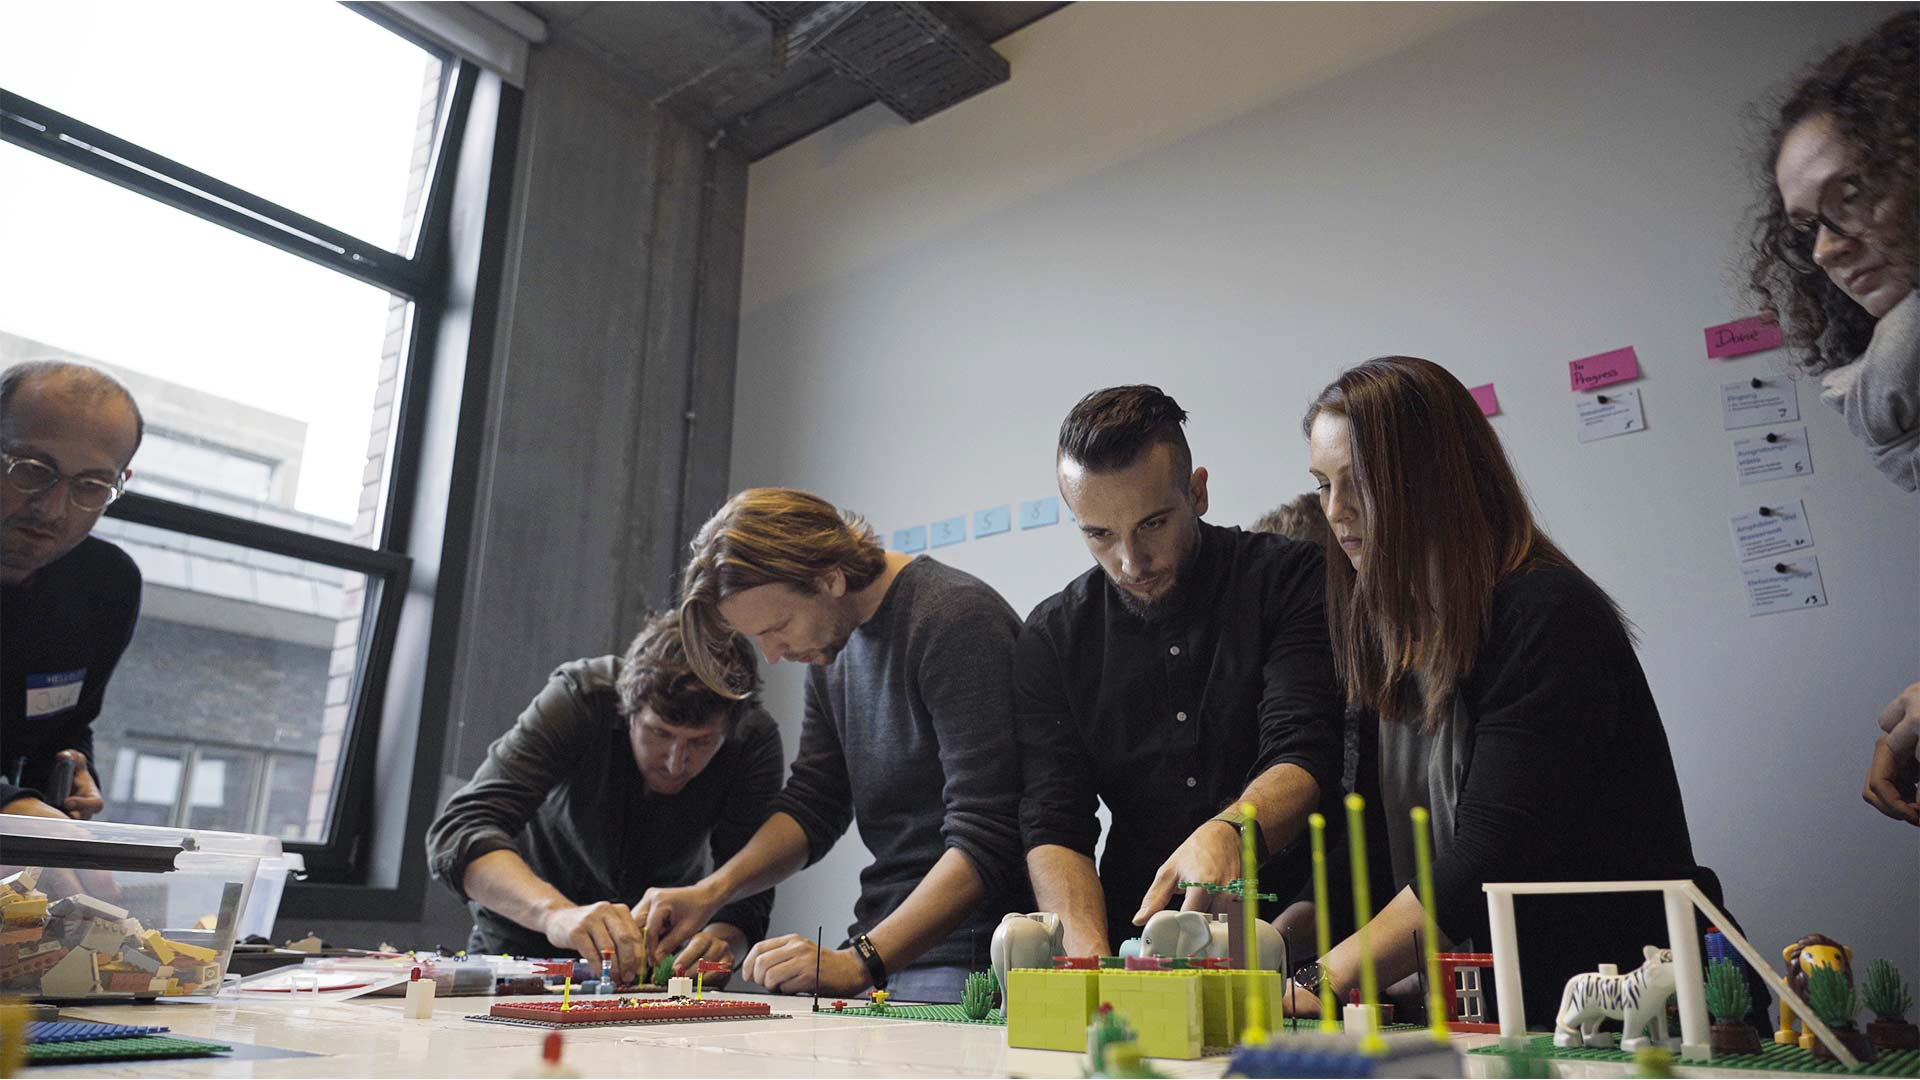 Group of People constructing with Lego